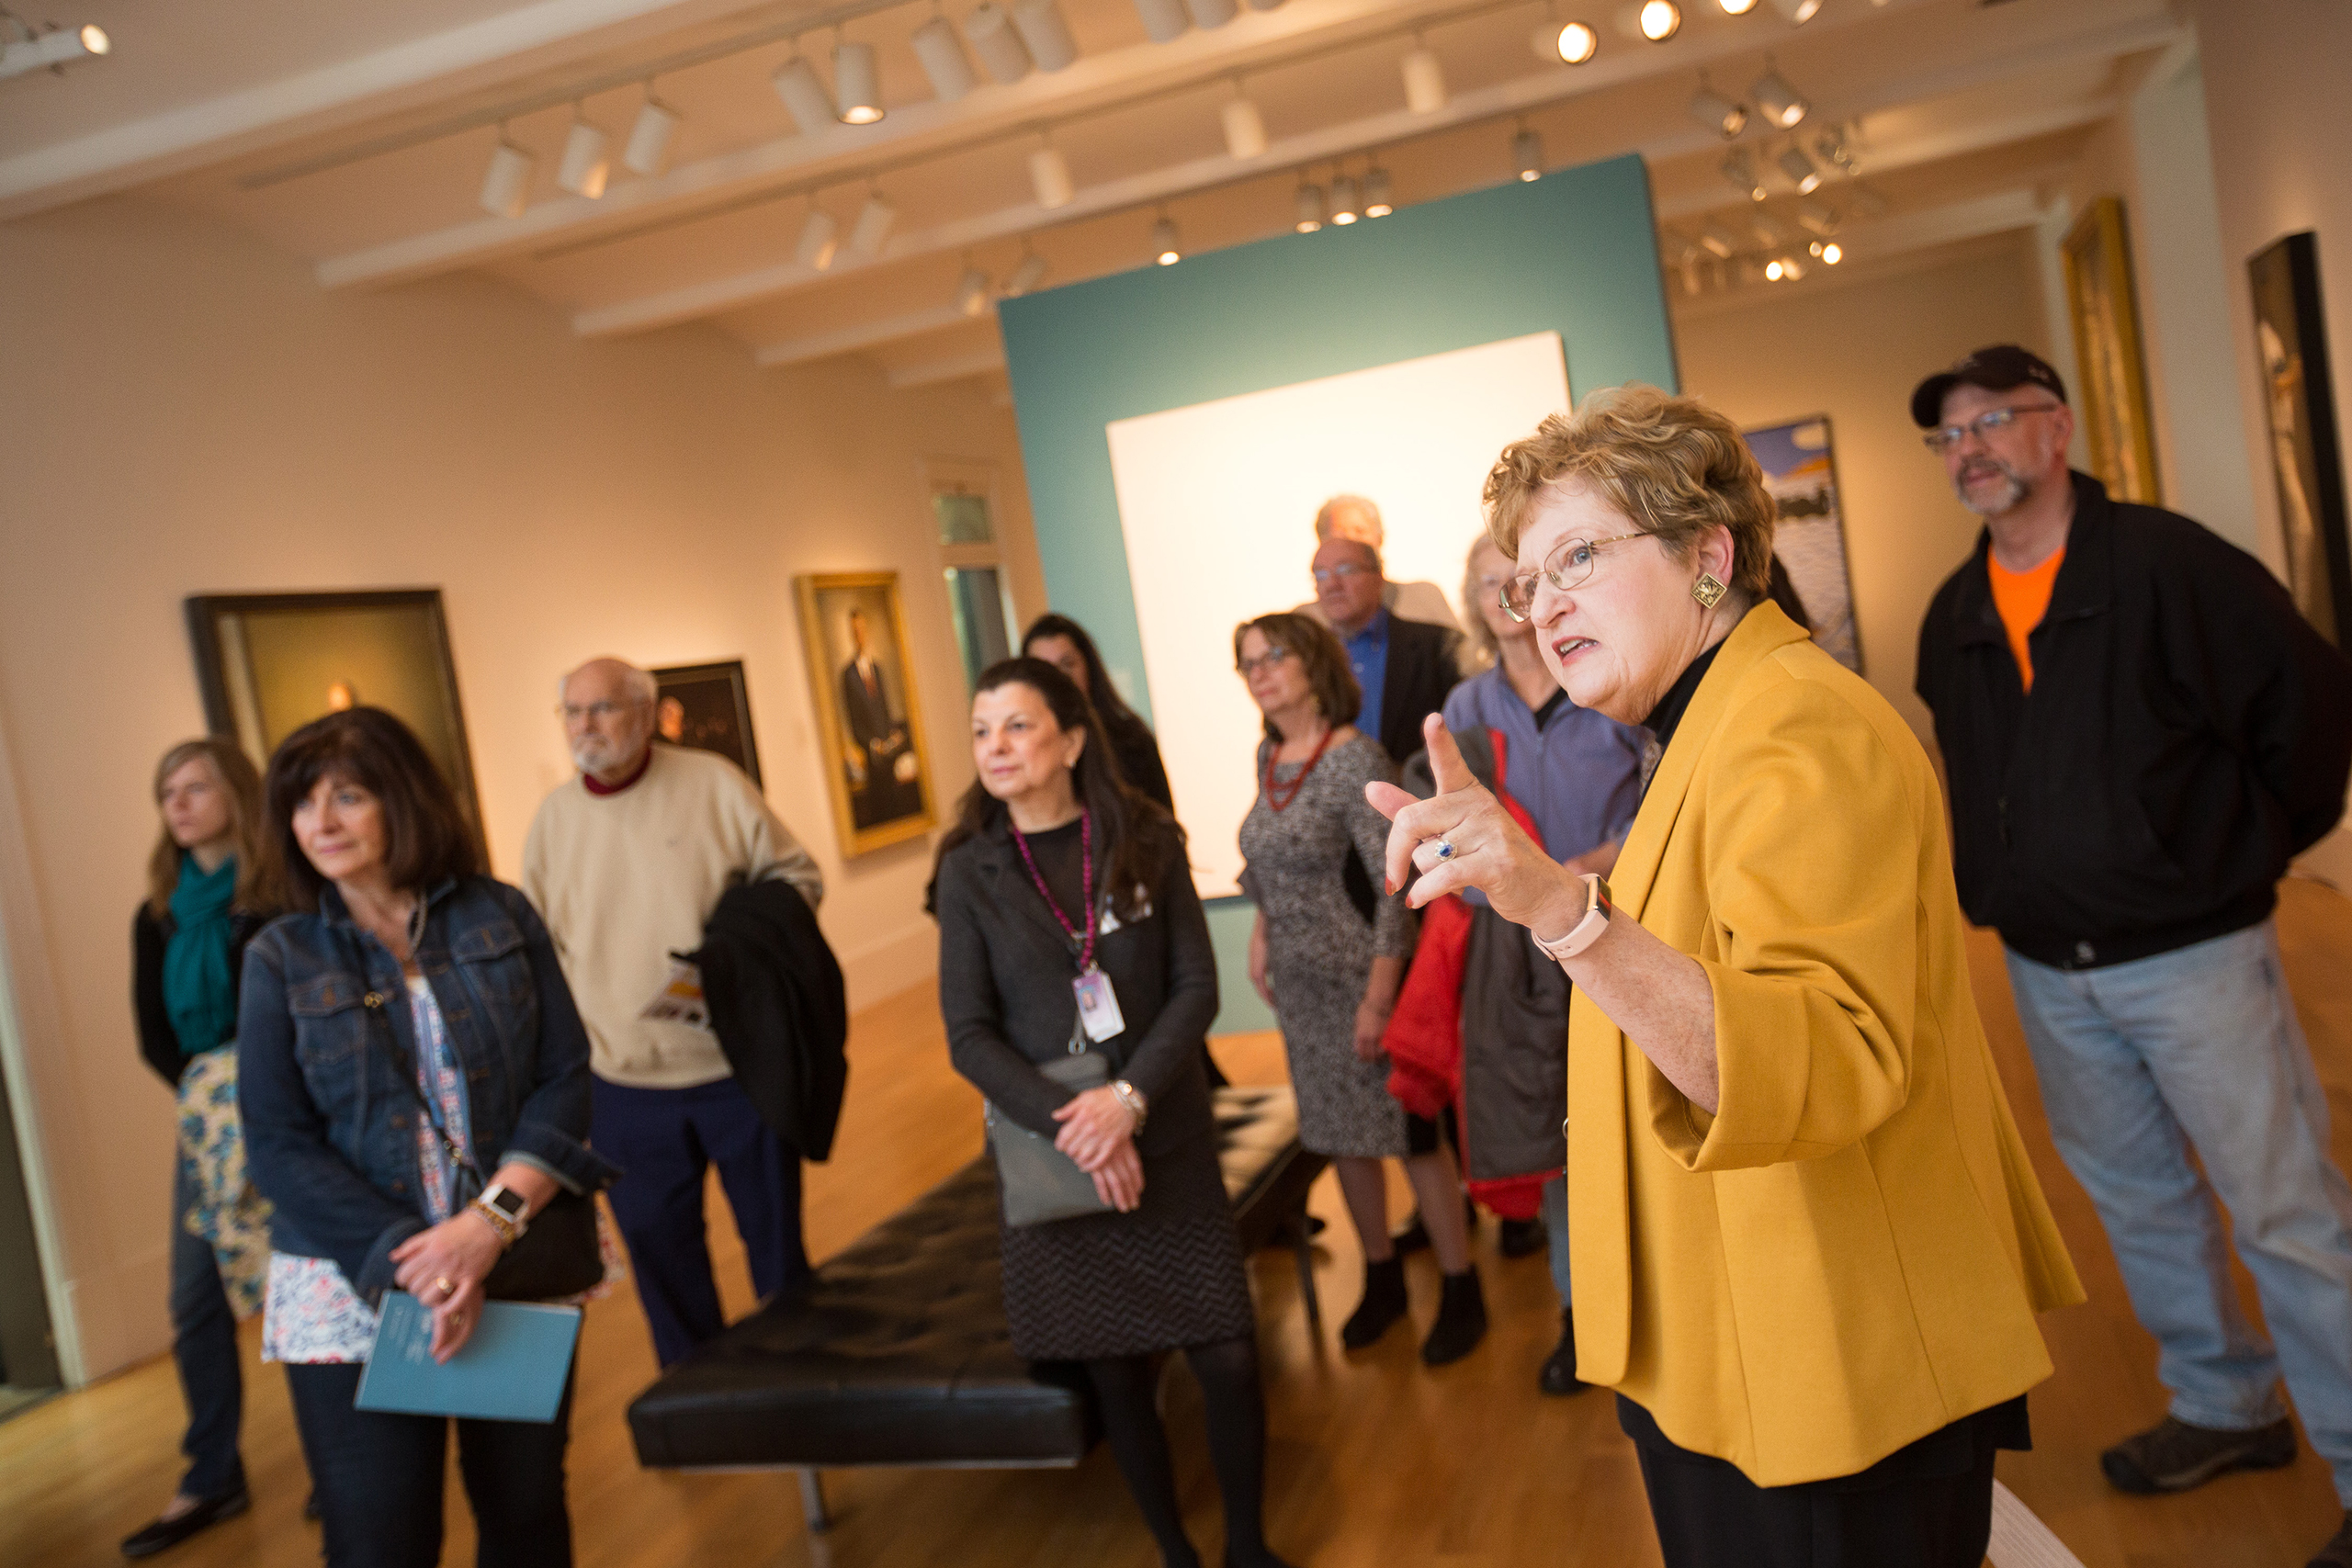 Docent in a yellow jacket giving a tour in the gallery